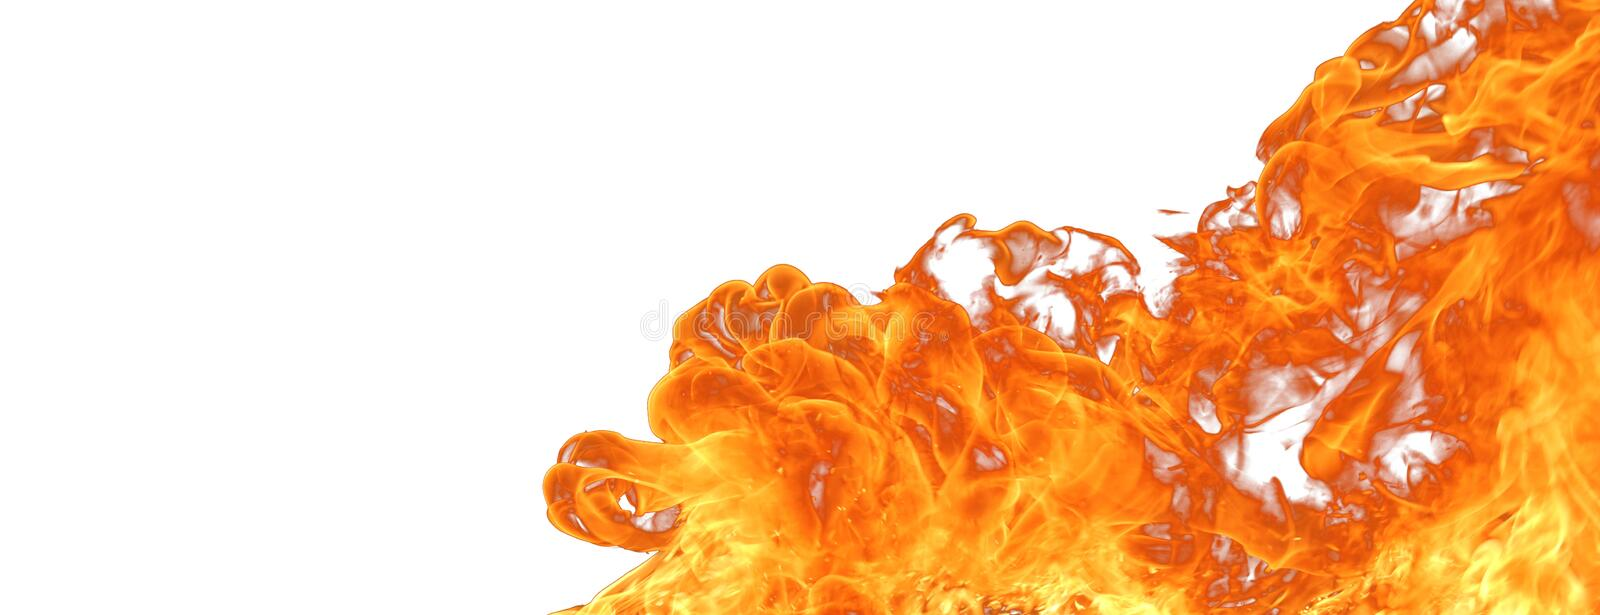 Download Big Fire Stock Photos - Image: 16451083